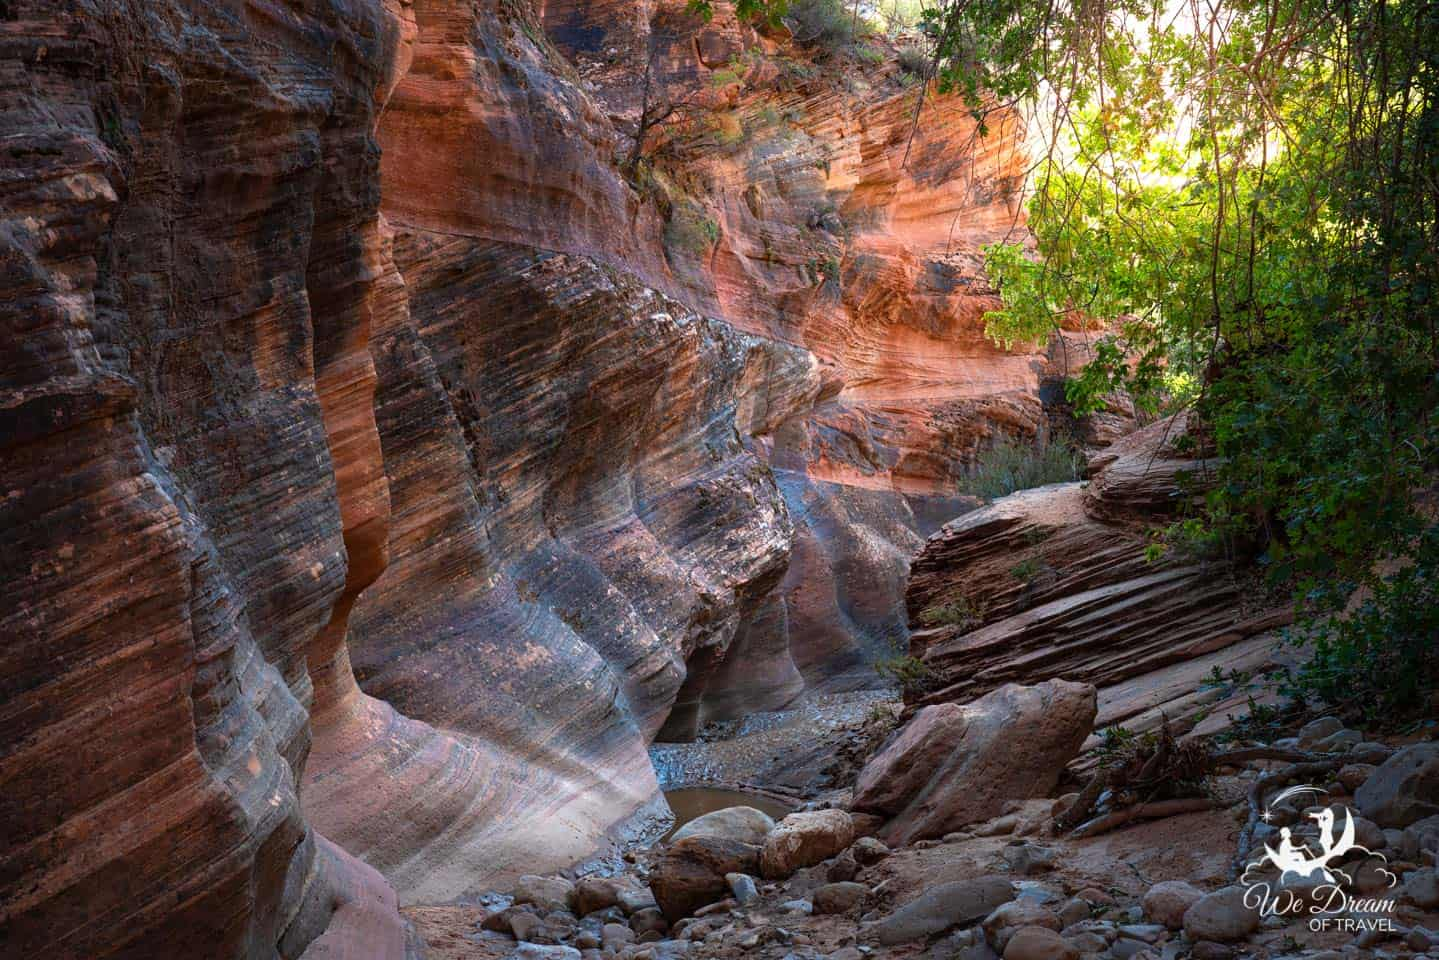 Many Pools is a small, unsigned area missed by most visitors traveling from Bryce Canyon to Zion.